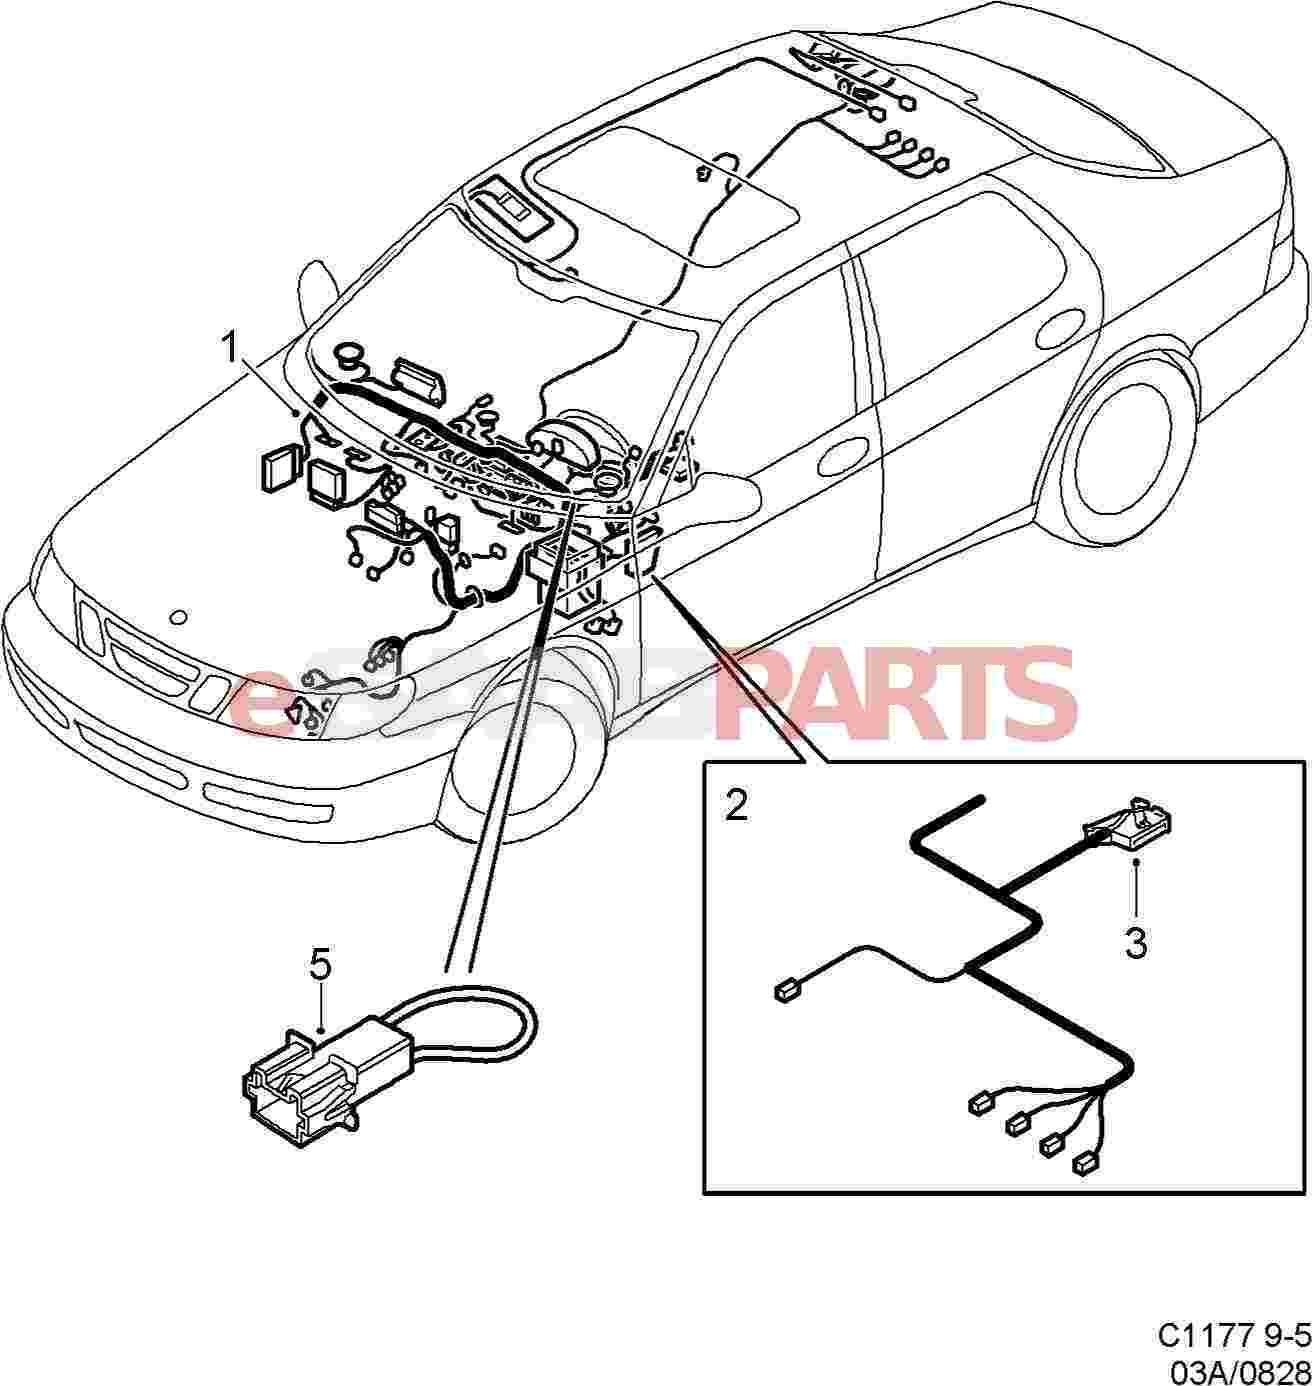 hight resolution of esaabparts com saab 9 5 9600 electrical parts wiring harness instrument panel